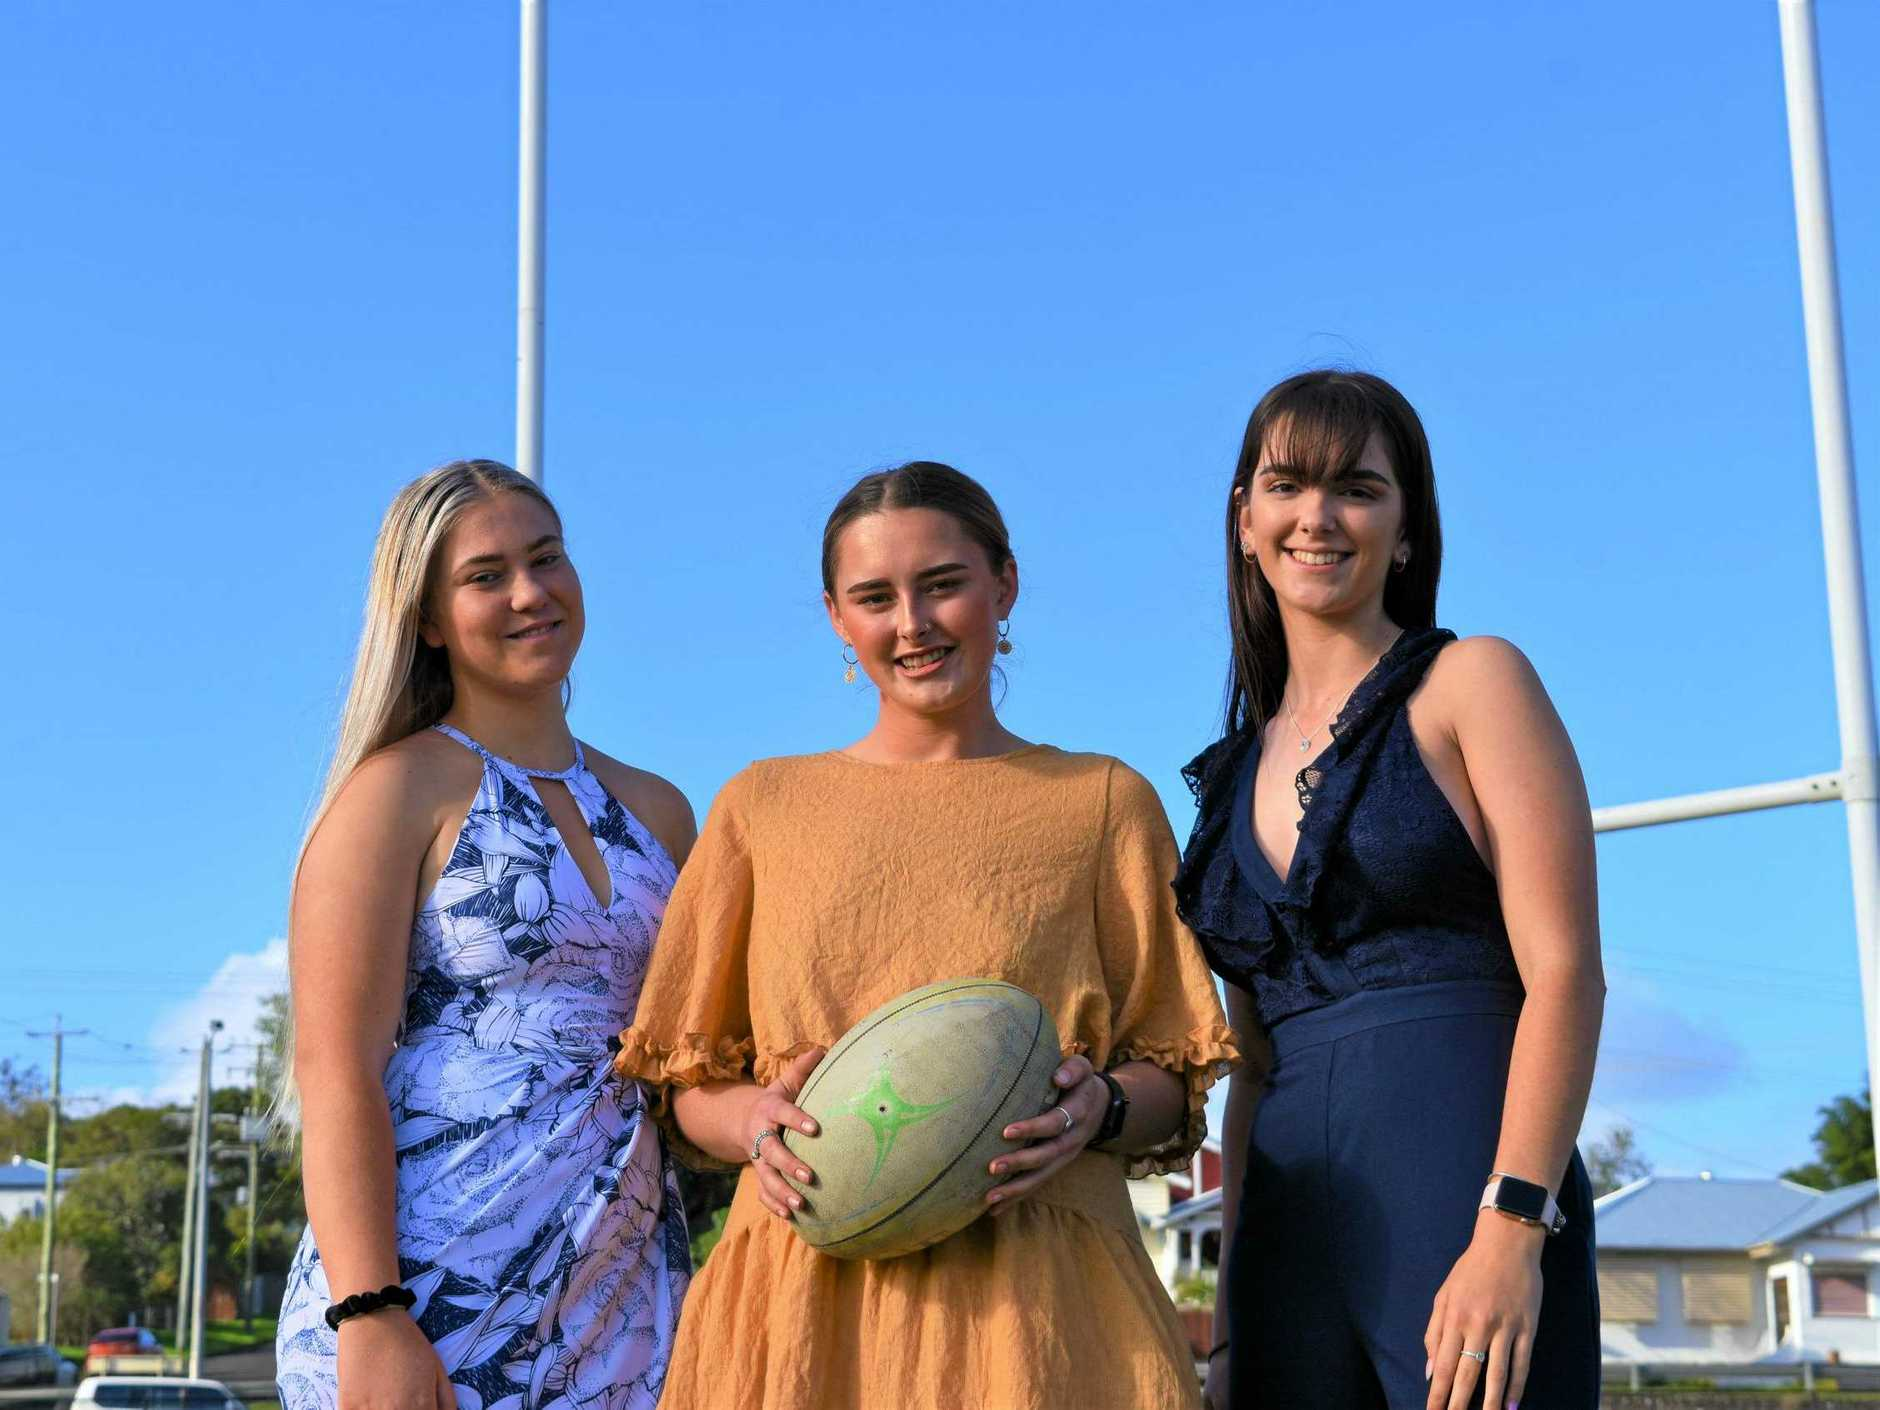 Ready for the Hammer's Ladies Day are (from left) Savanah Brown, Taylor Jardine and Lilli Crumblin.